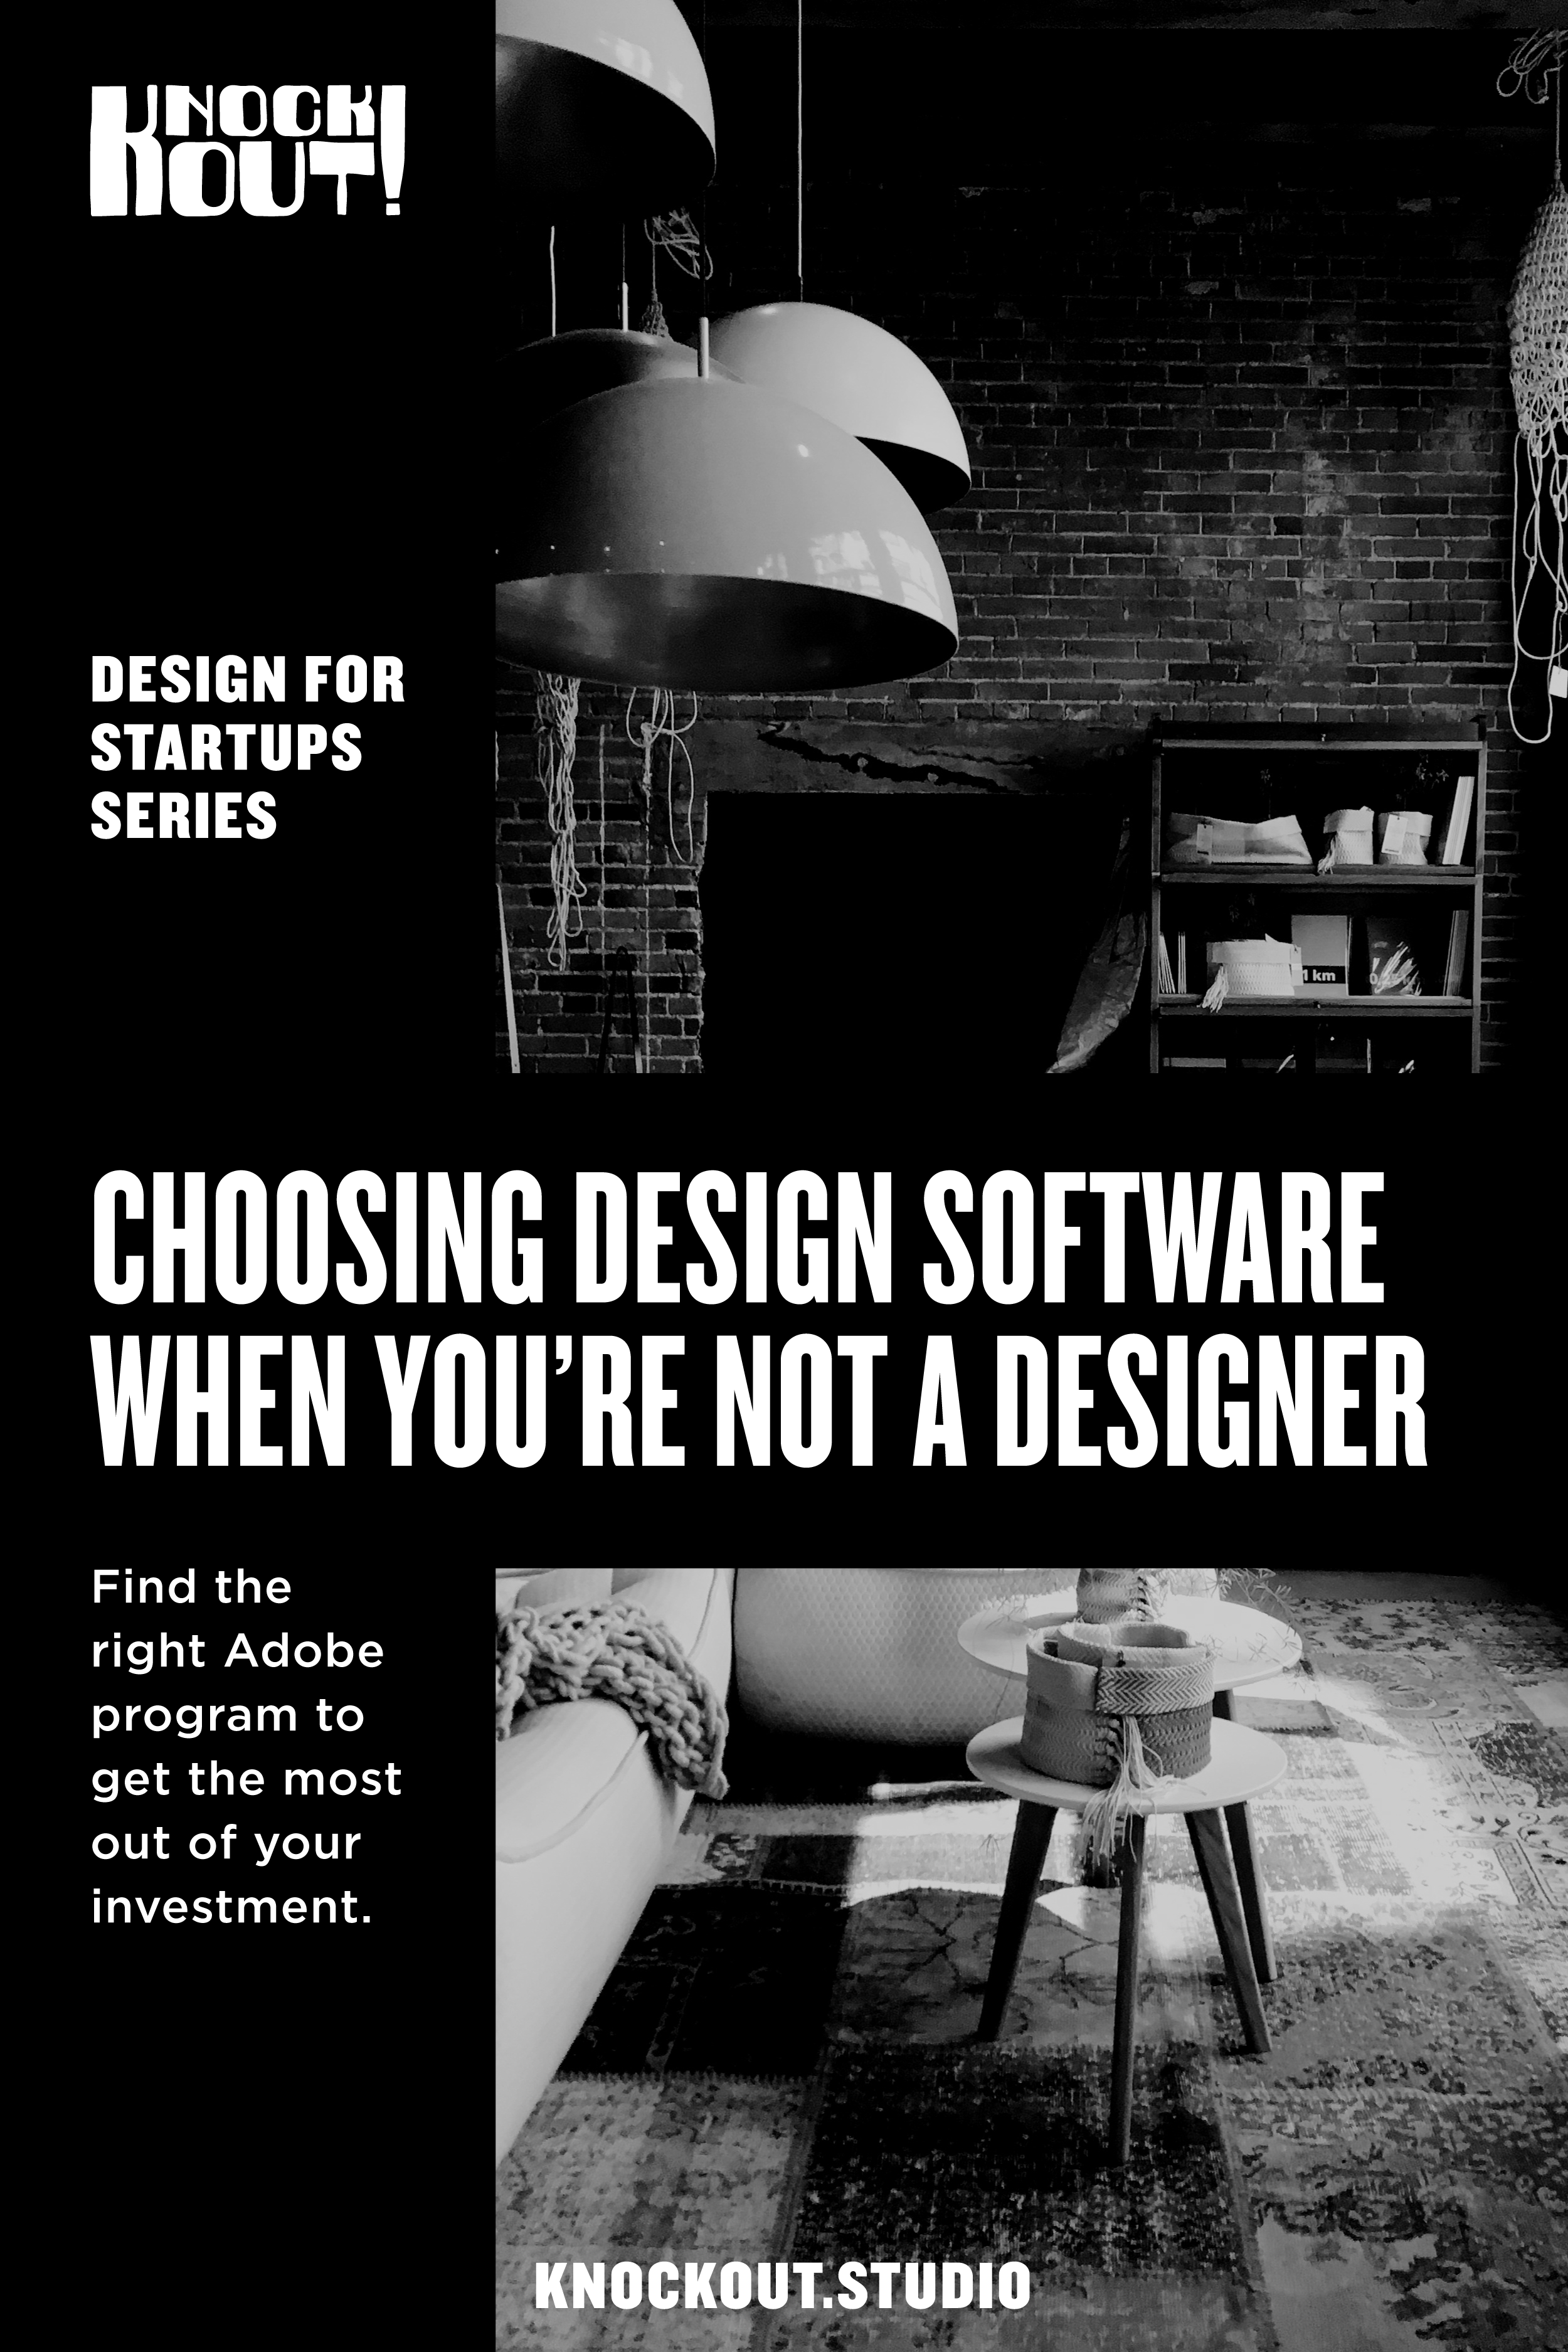 ChoosingDesignSoftware.png